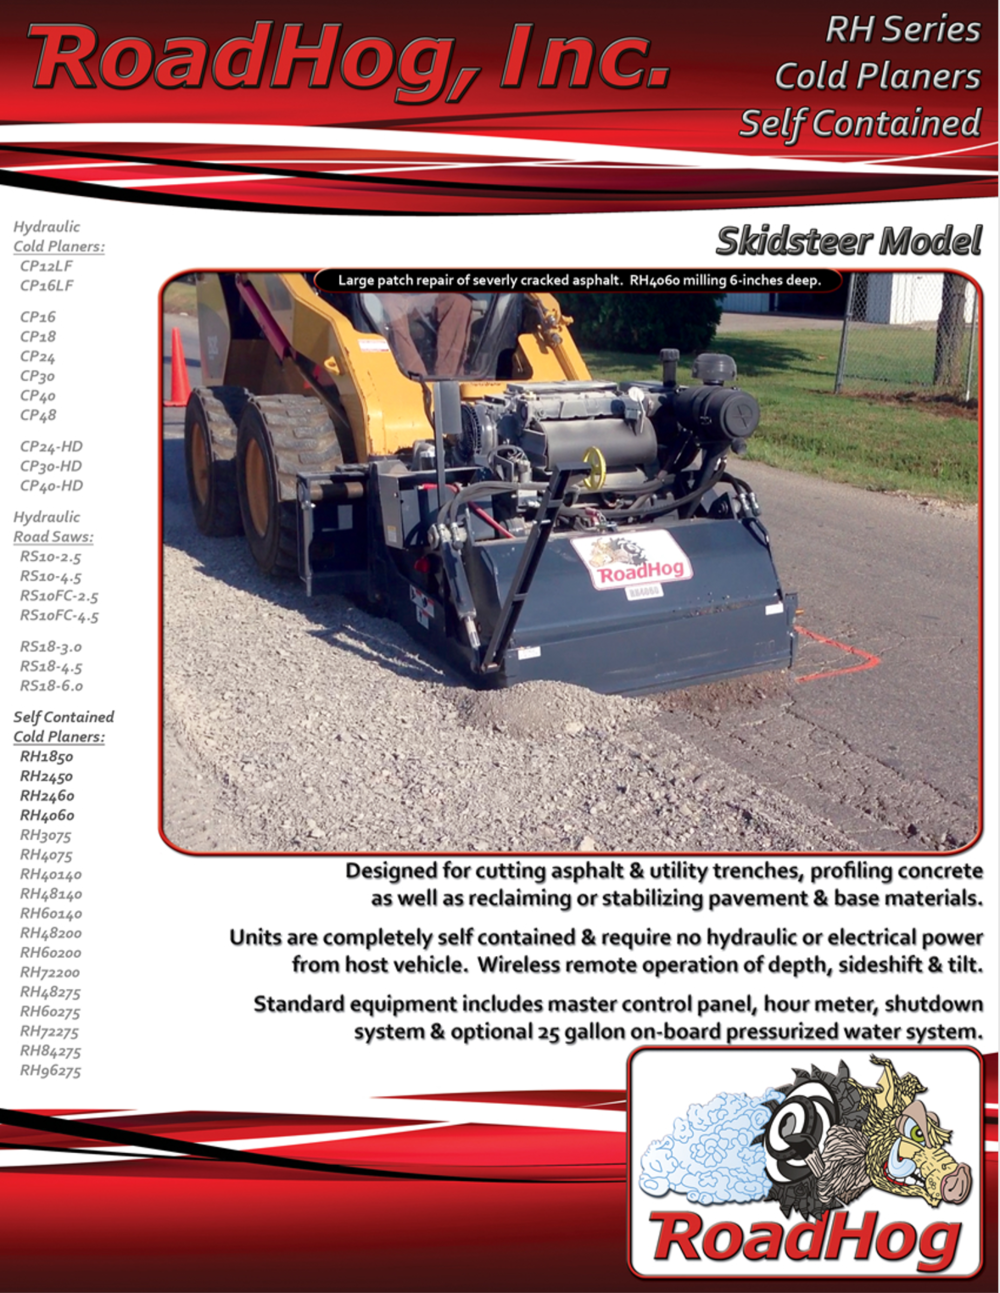 RH Self Contained Skid Steer Cold Planer Brochure